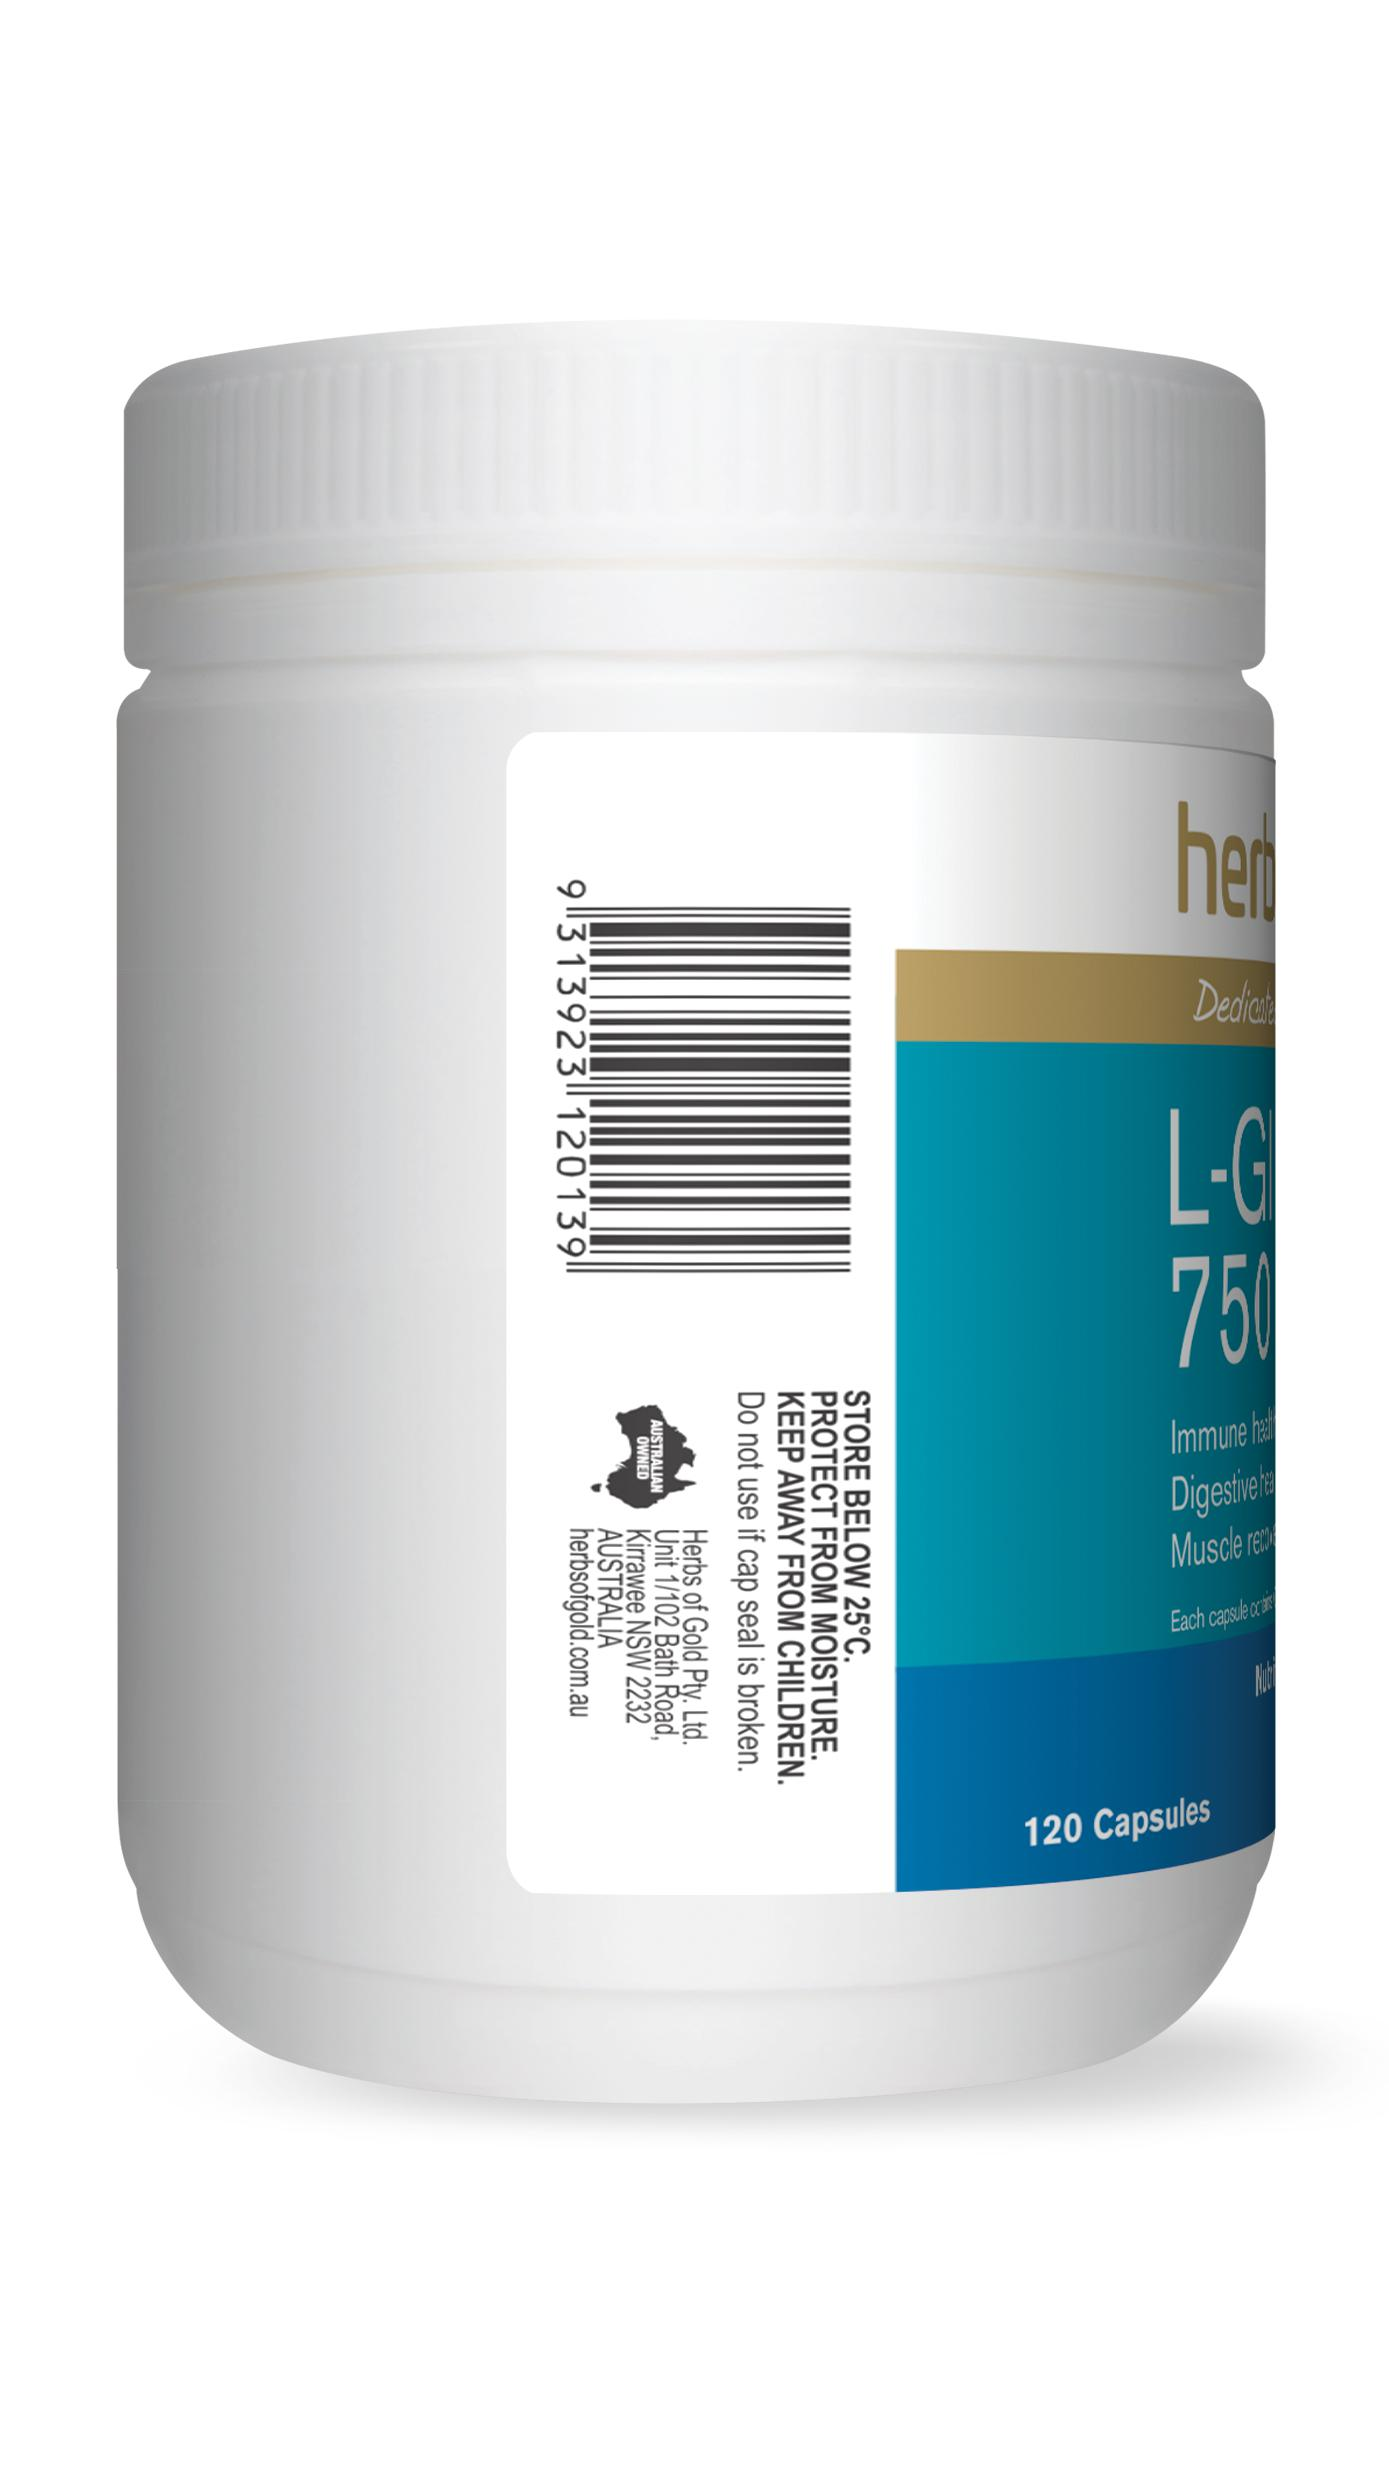 HofG L-Glutamine 750-Vitamin and Minerals - Probiotic And Gut Health-Herbs of Gold-120VC-Thrive Health and Nutrition